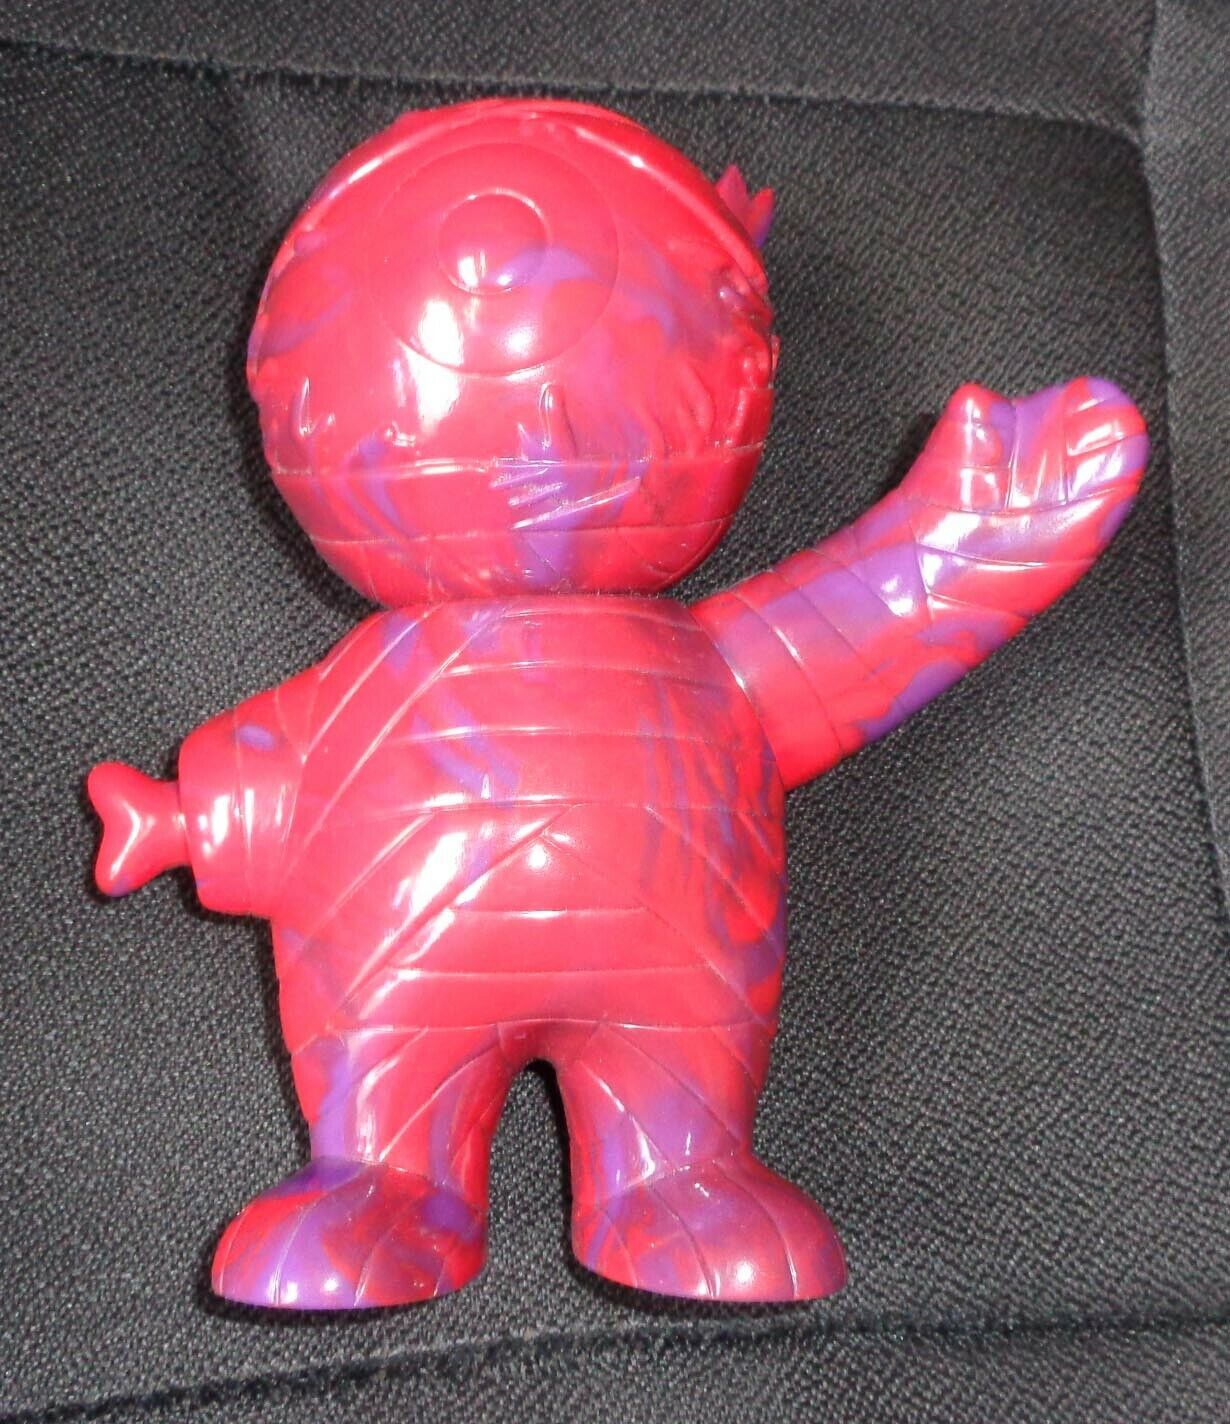 Super7 Mishka Keep Watch Mummy Boy Unpainted Red Purple Marble Vinyl Figure